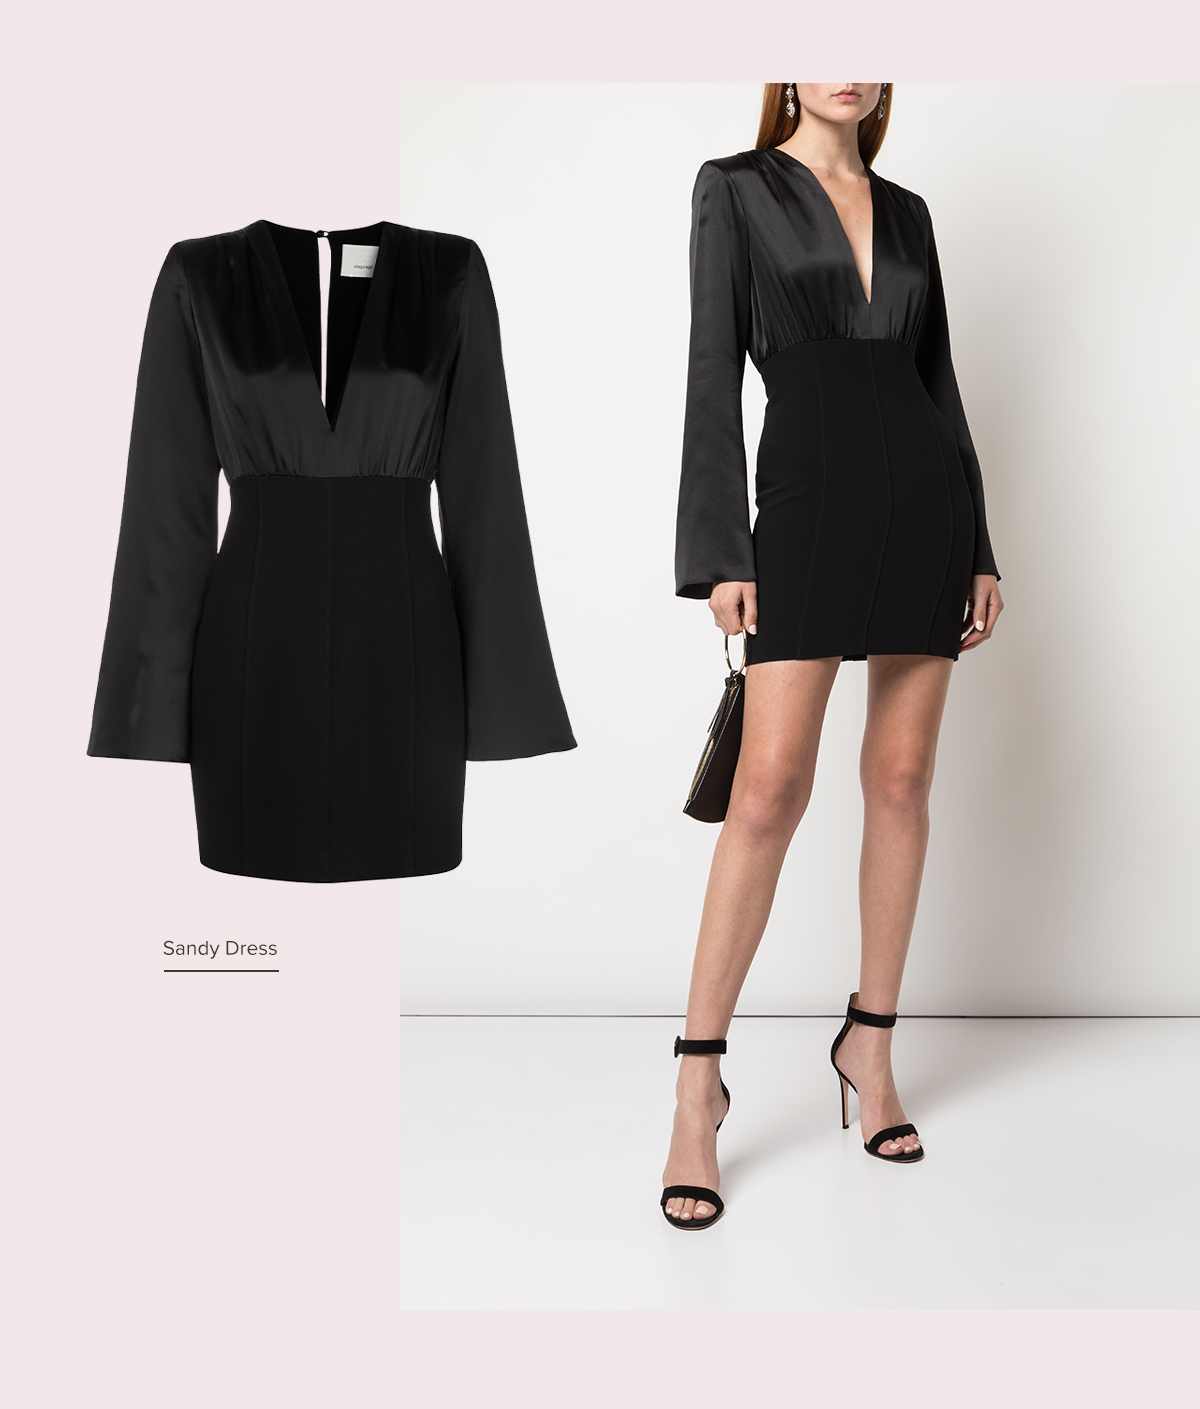 https://cinqasept.nyc/products/sandy-dress-in-black